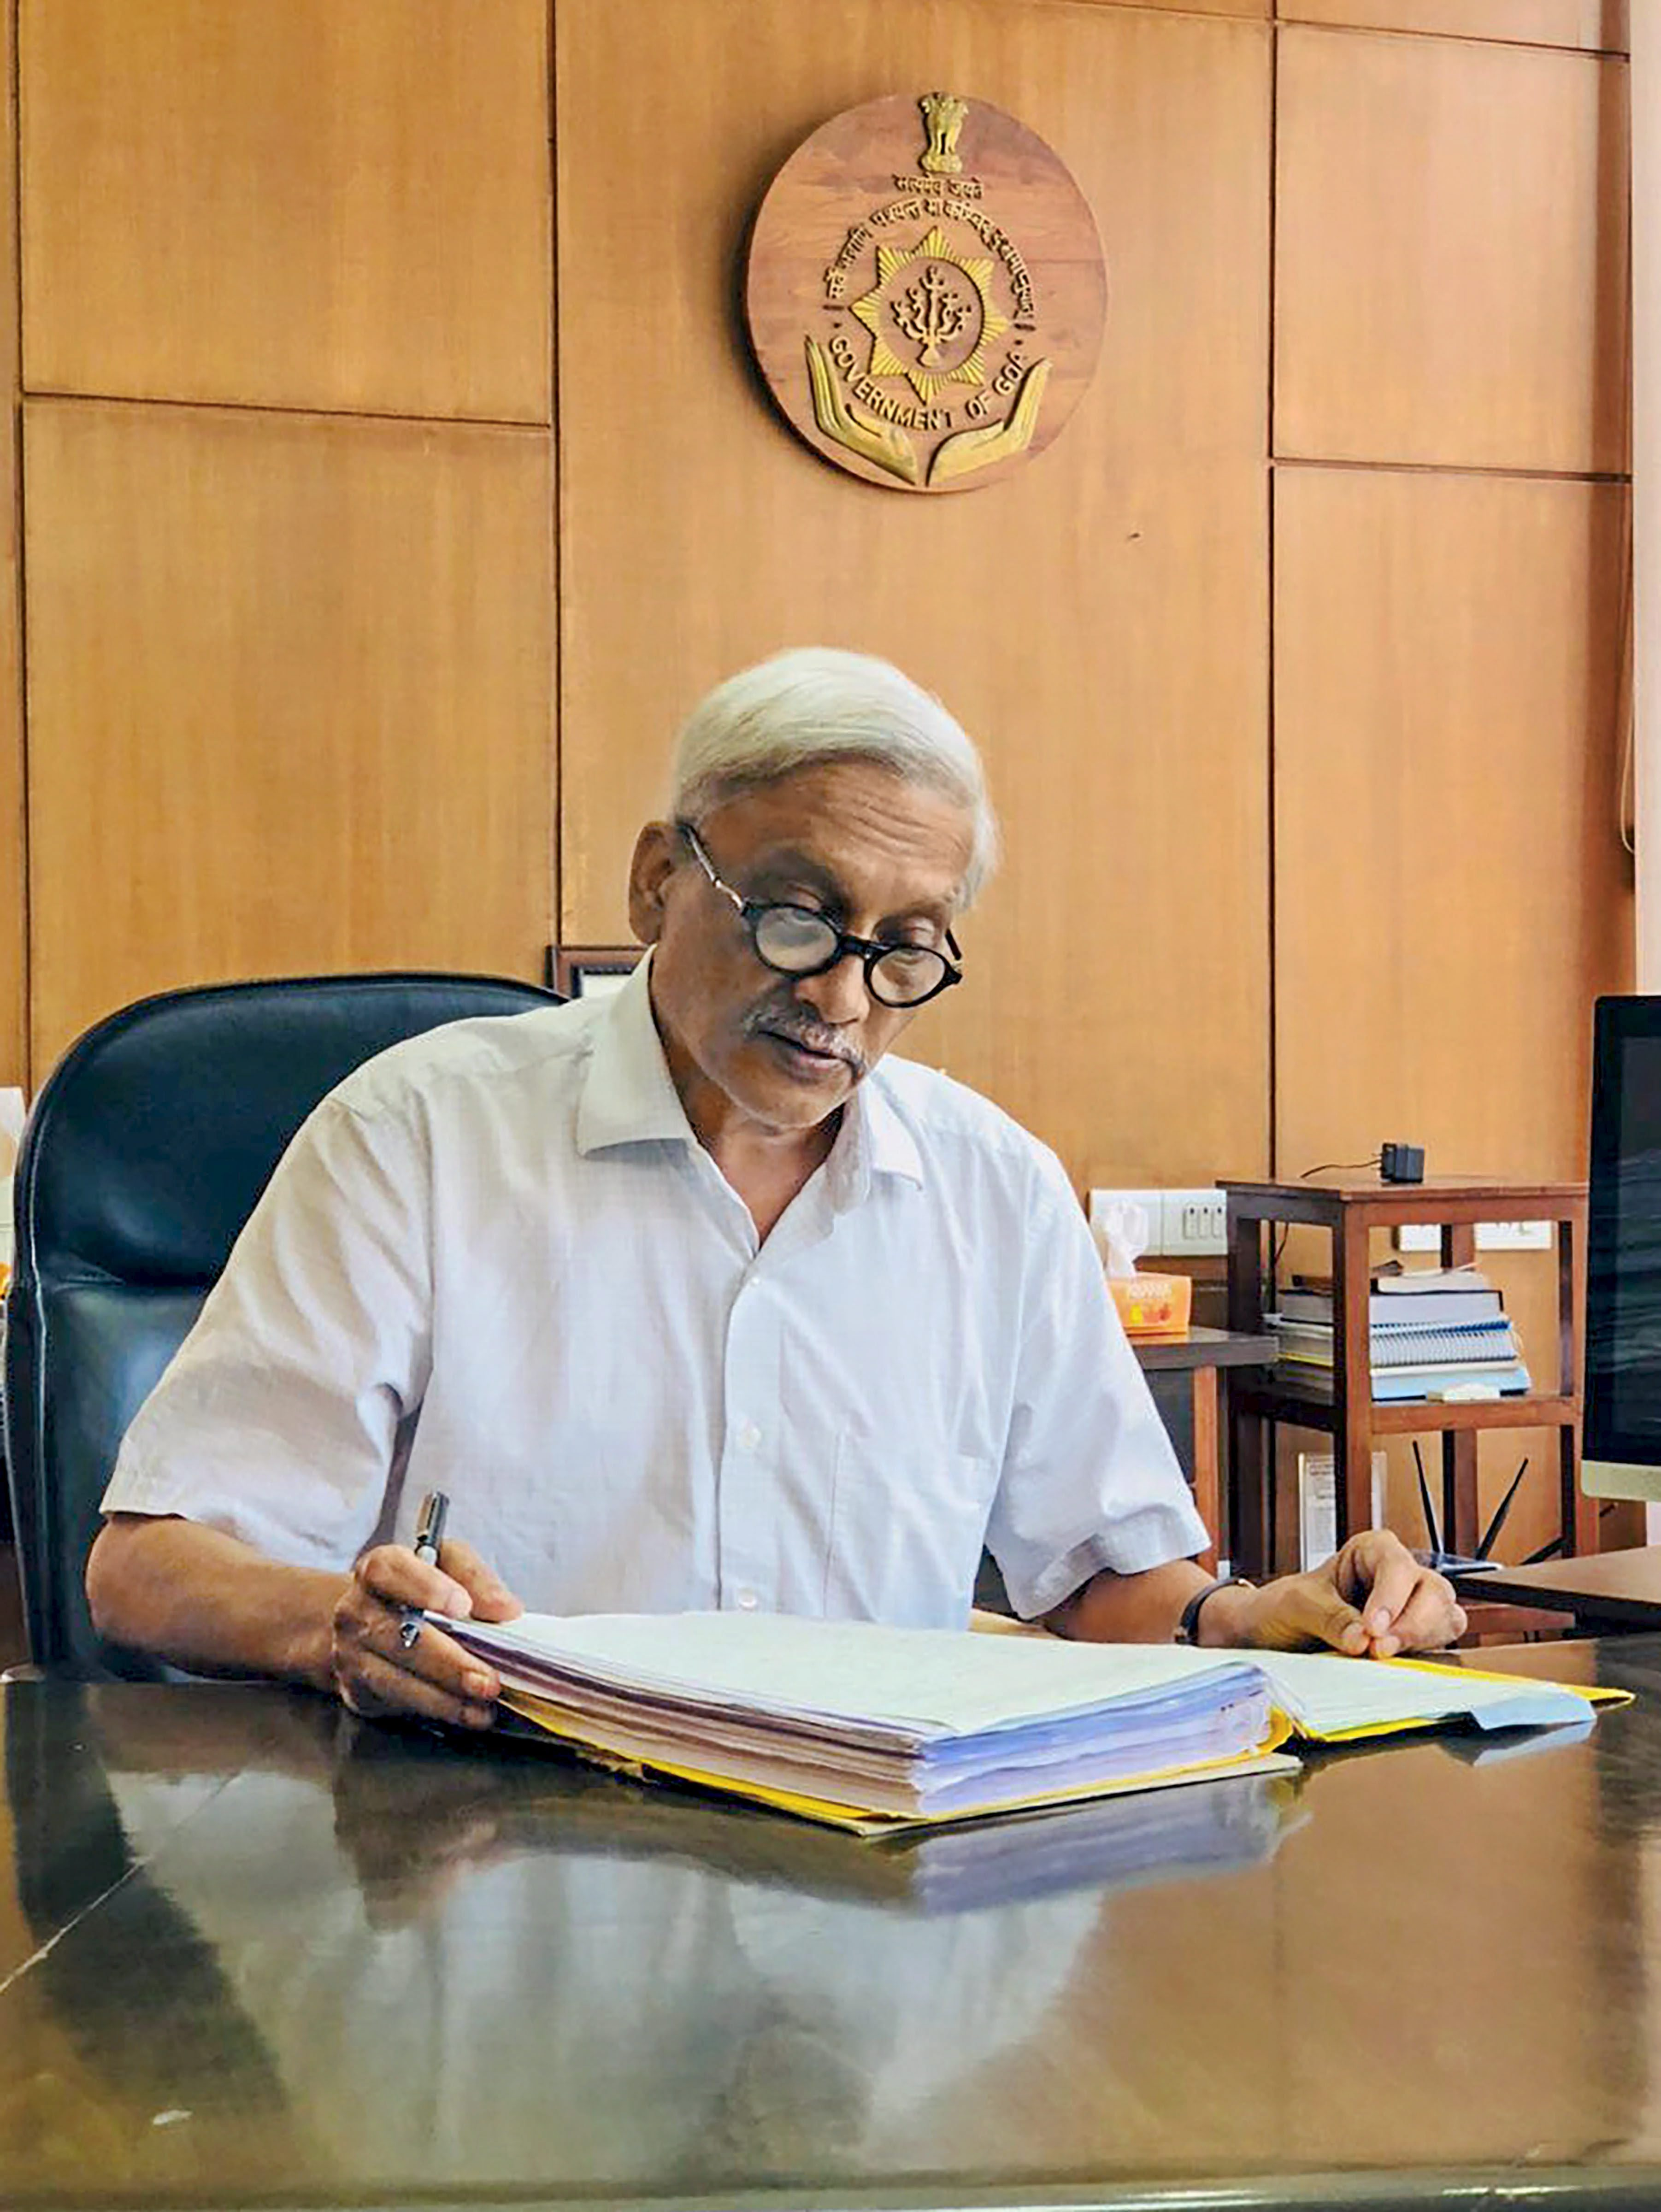 Manohar Parrikar, the Goa chief miniser, died on Sunday evening, necessitating the BJP and its allies in the state to look for a successor.